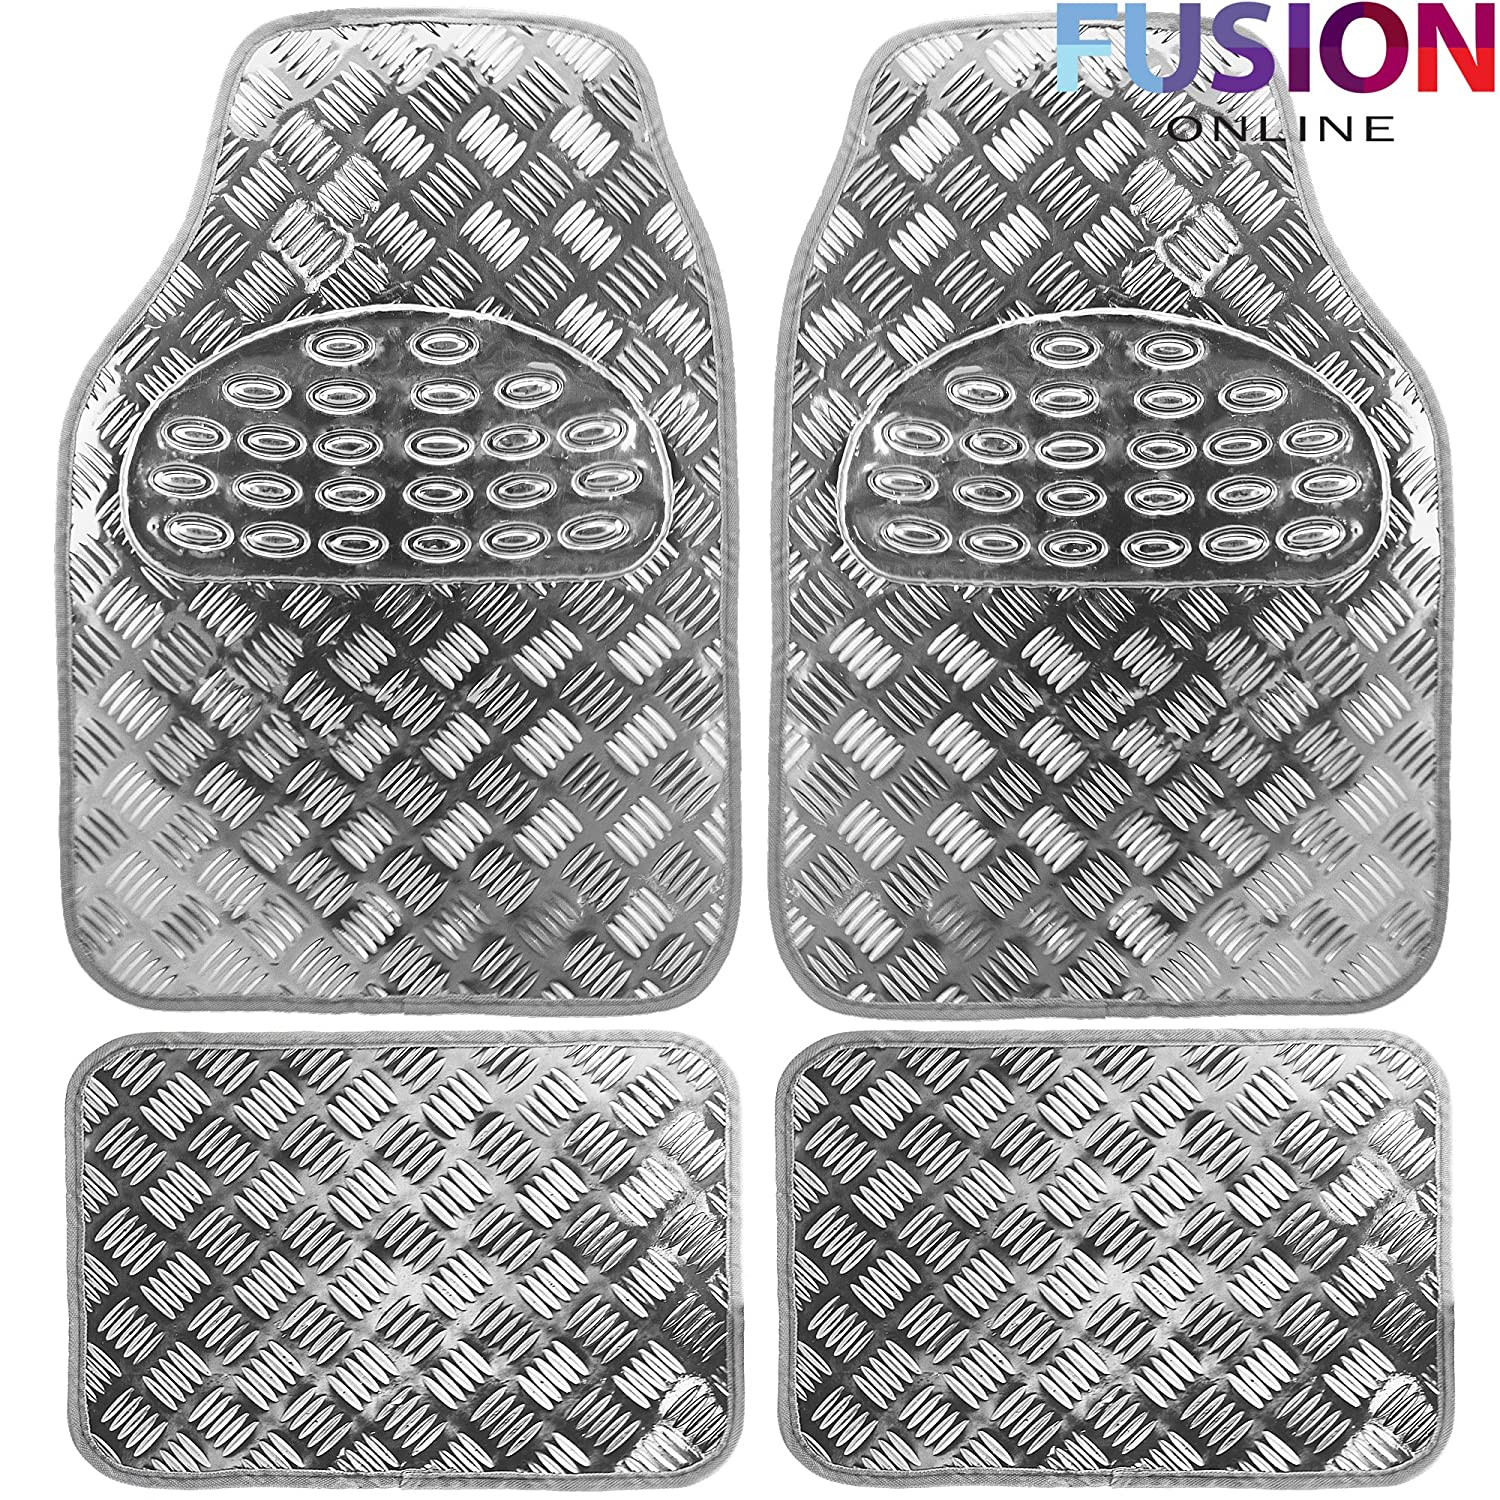 4PC Heavy Duty Alloy Checker Chrome Plate Mat Aluminium Effect Car Mats Set Van (Fusion) (TM) (Silver)